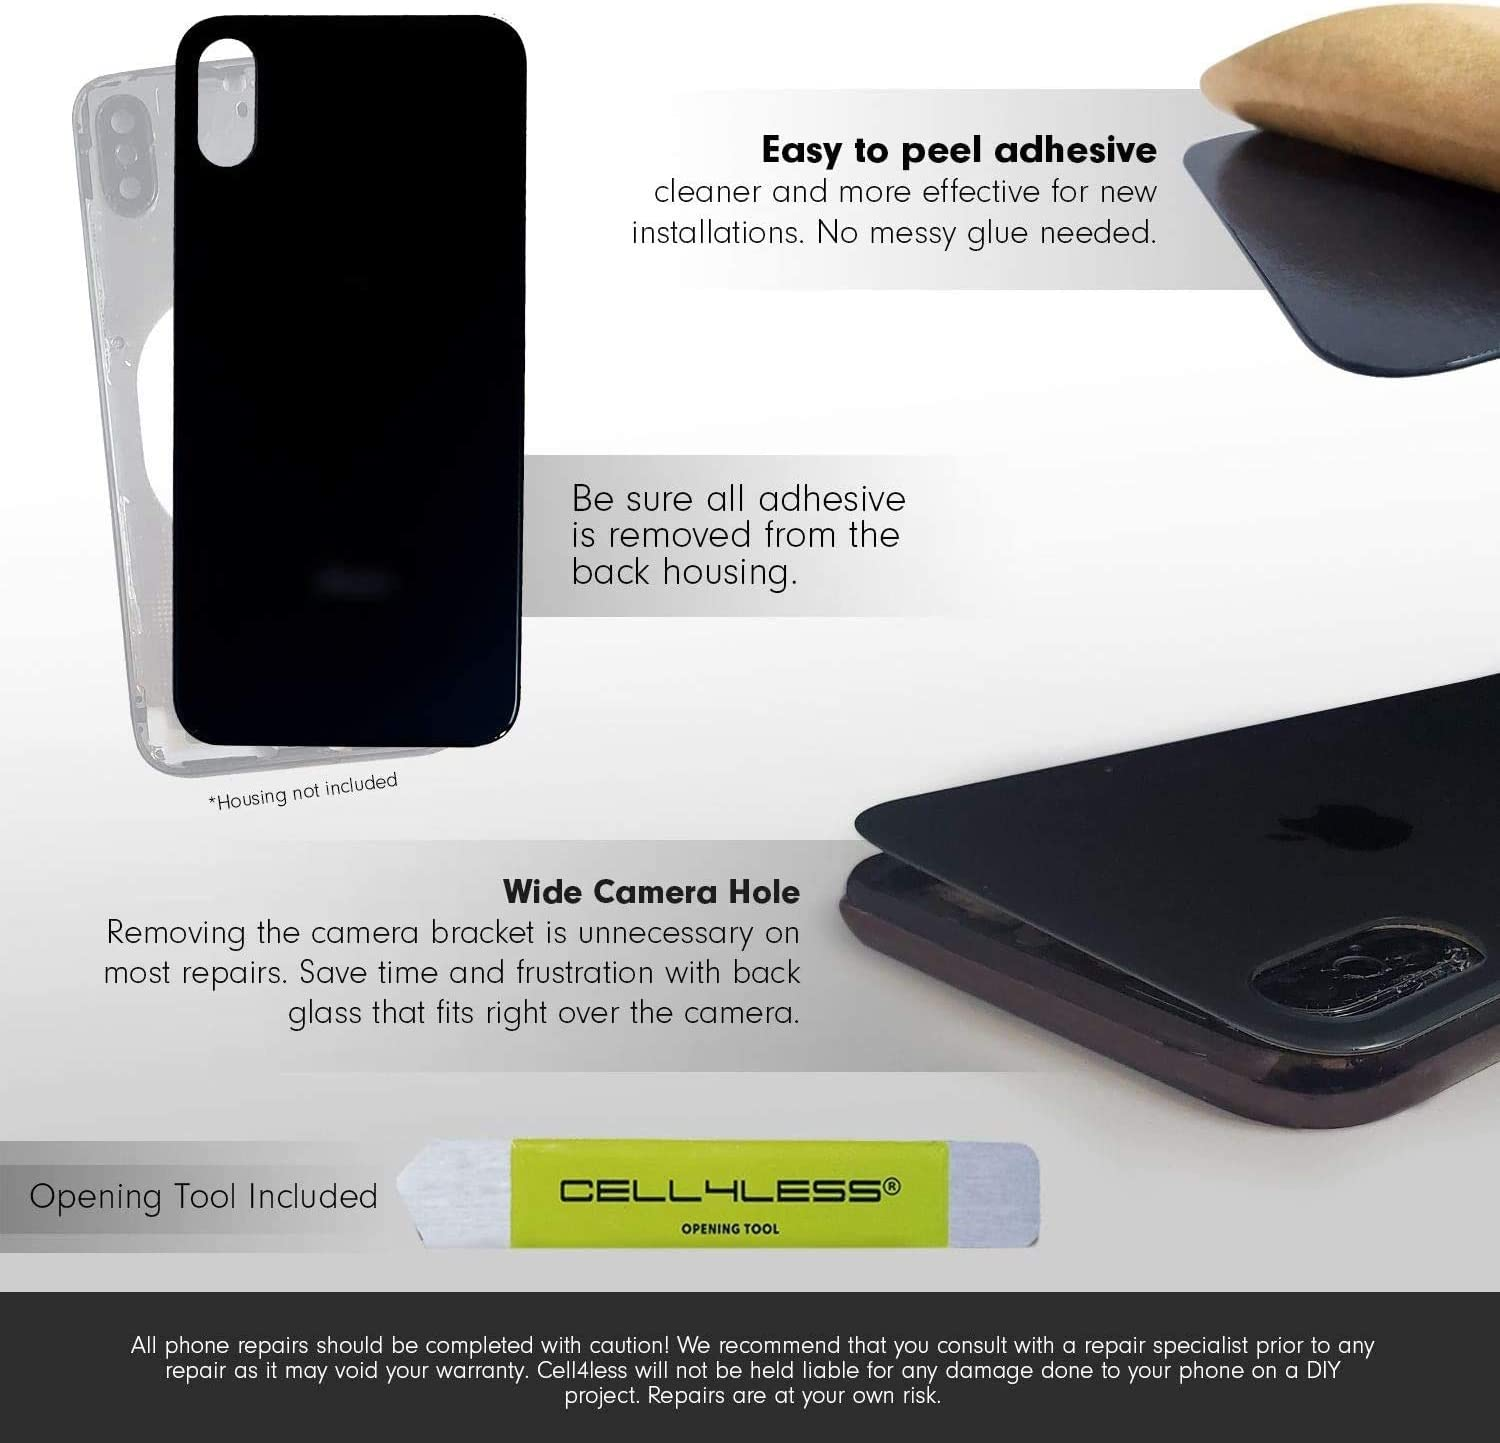 Cell4less Back Glass Compatible with The iPhone Xs Max W/Full Body Adhesive, Removal Tool, and Wide Camera Hole for Quicker Installation (Black)